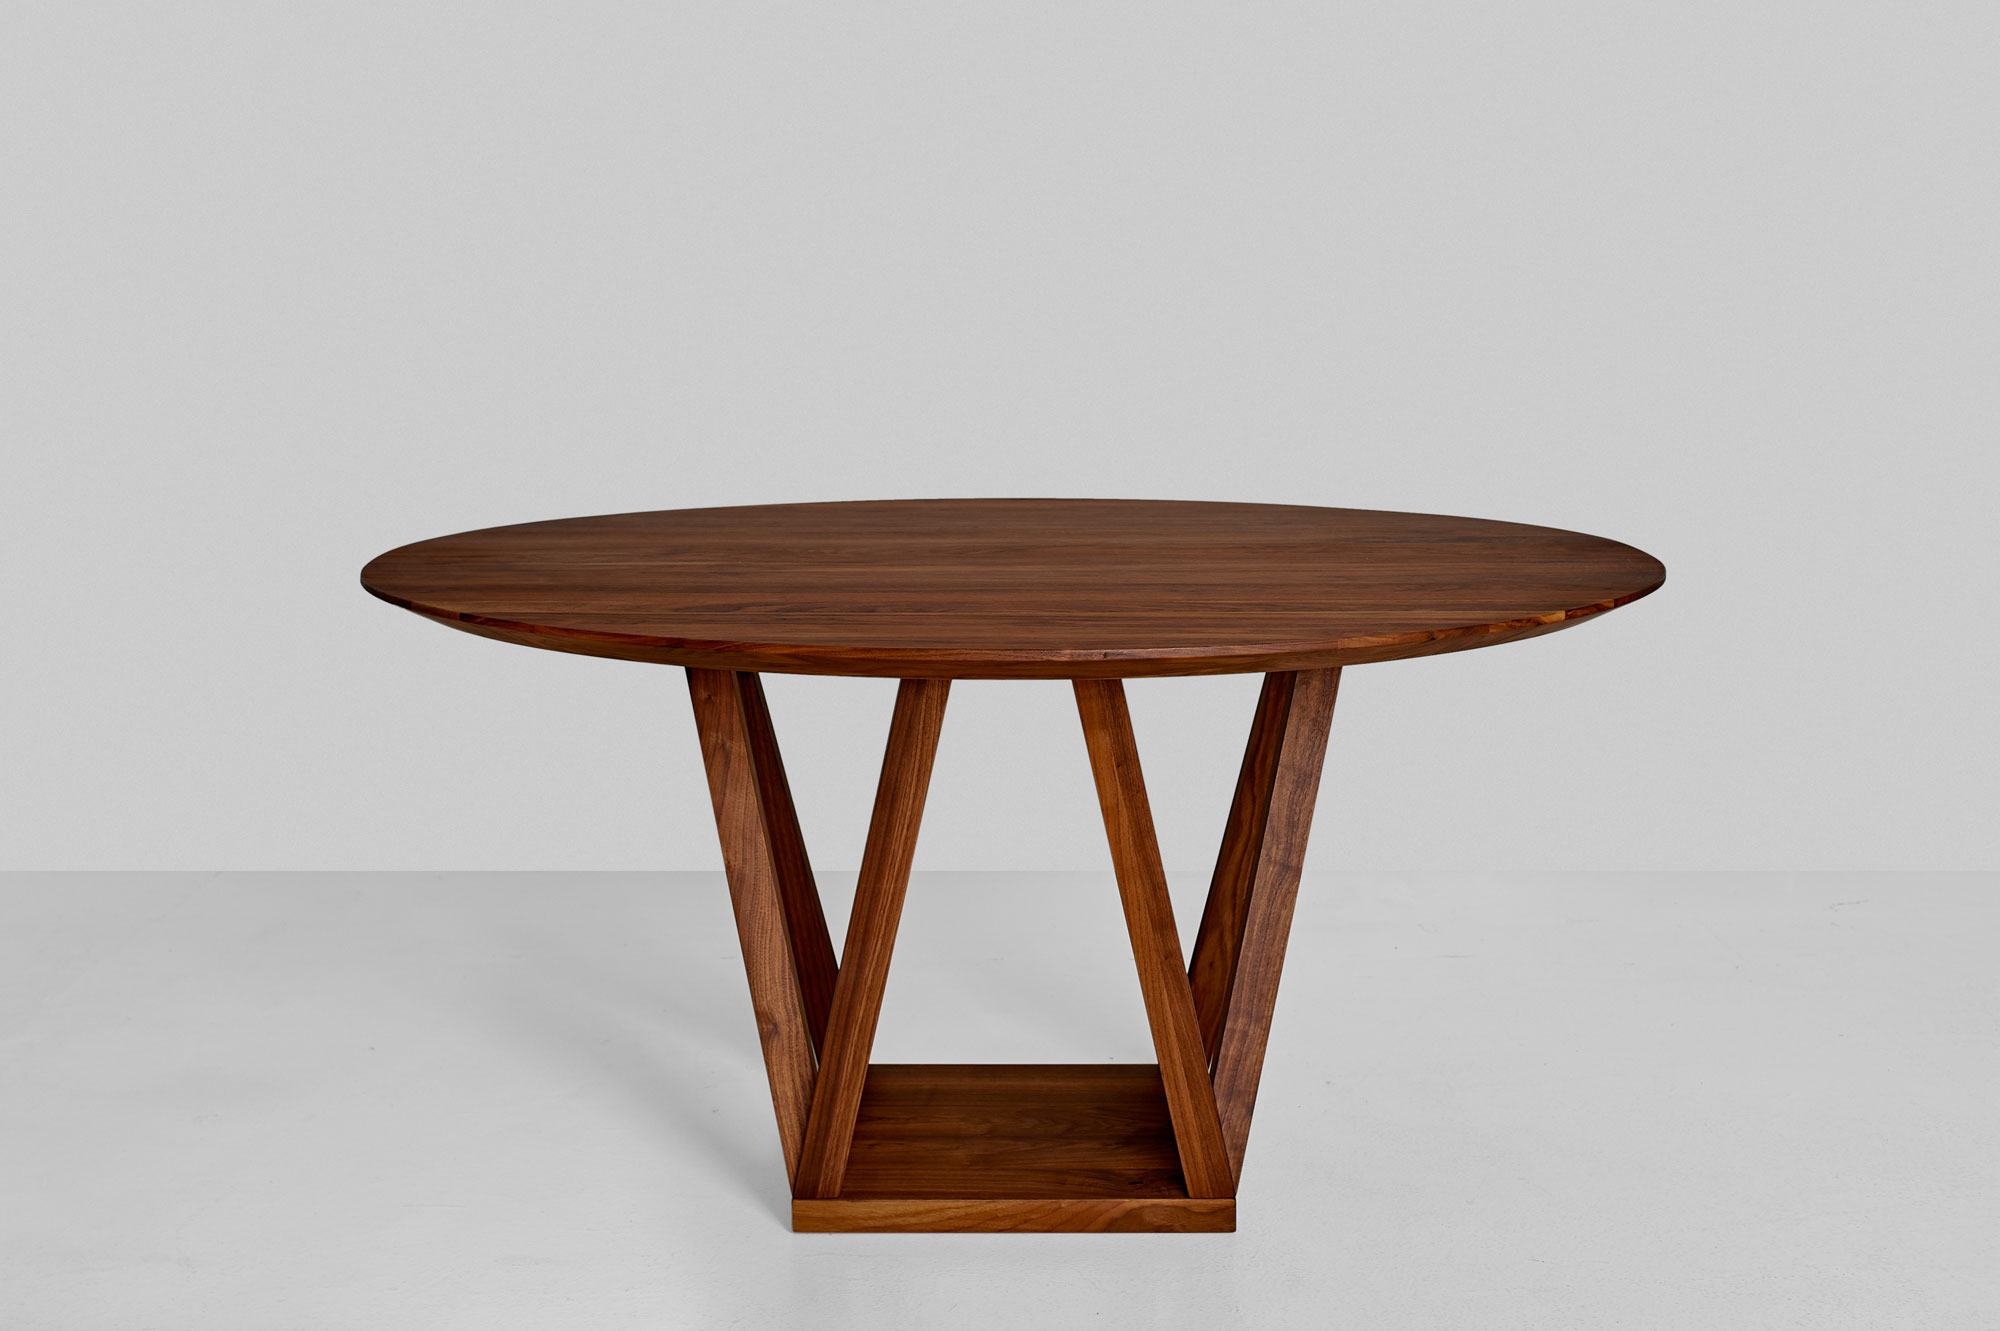 Round Designer Table CREO 0988 custom made in solid wood by vitamin design